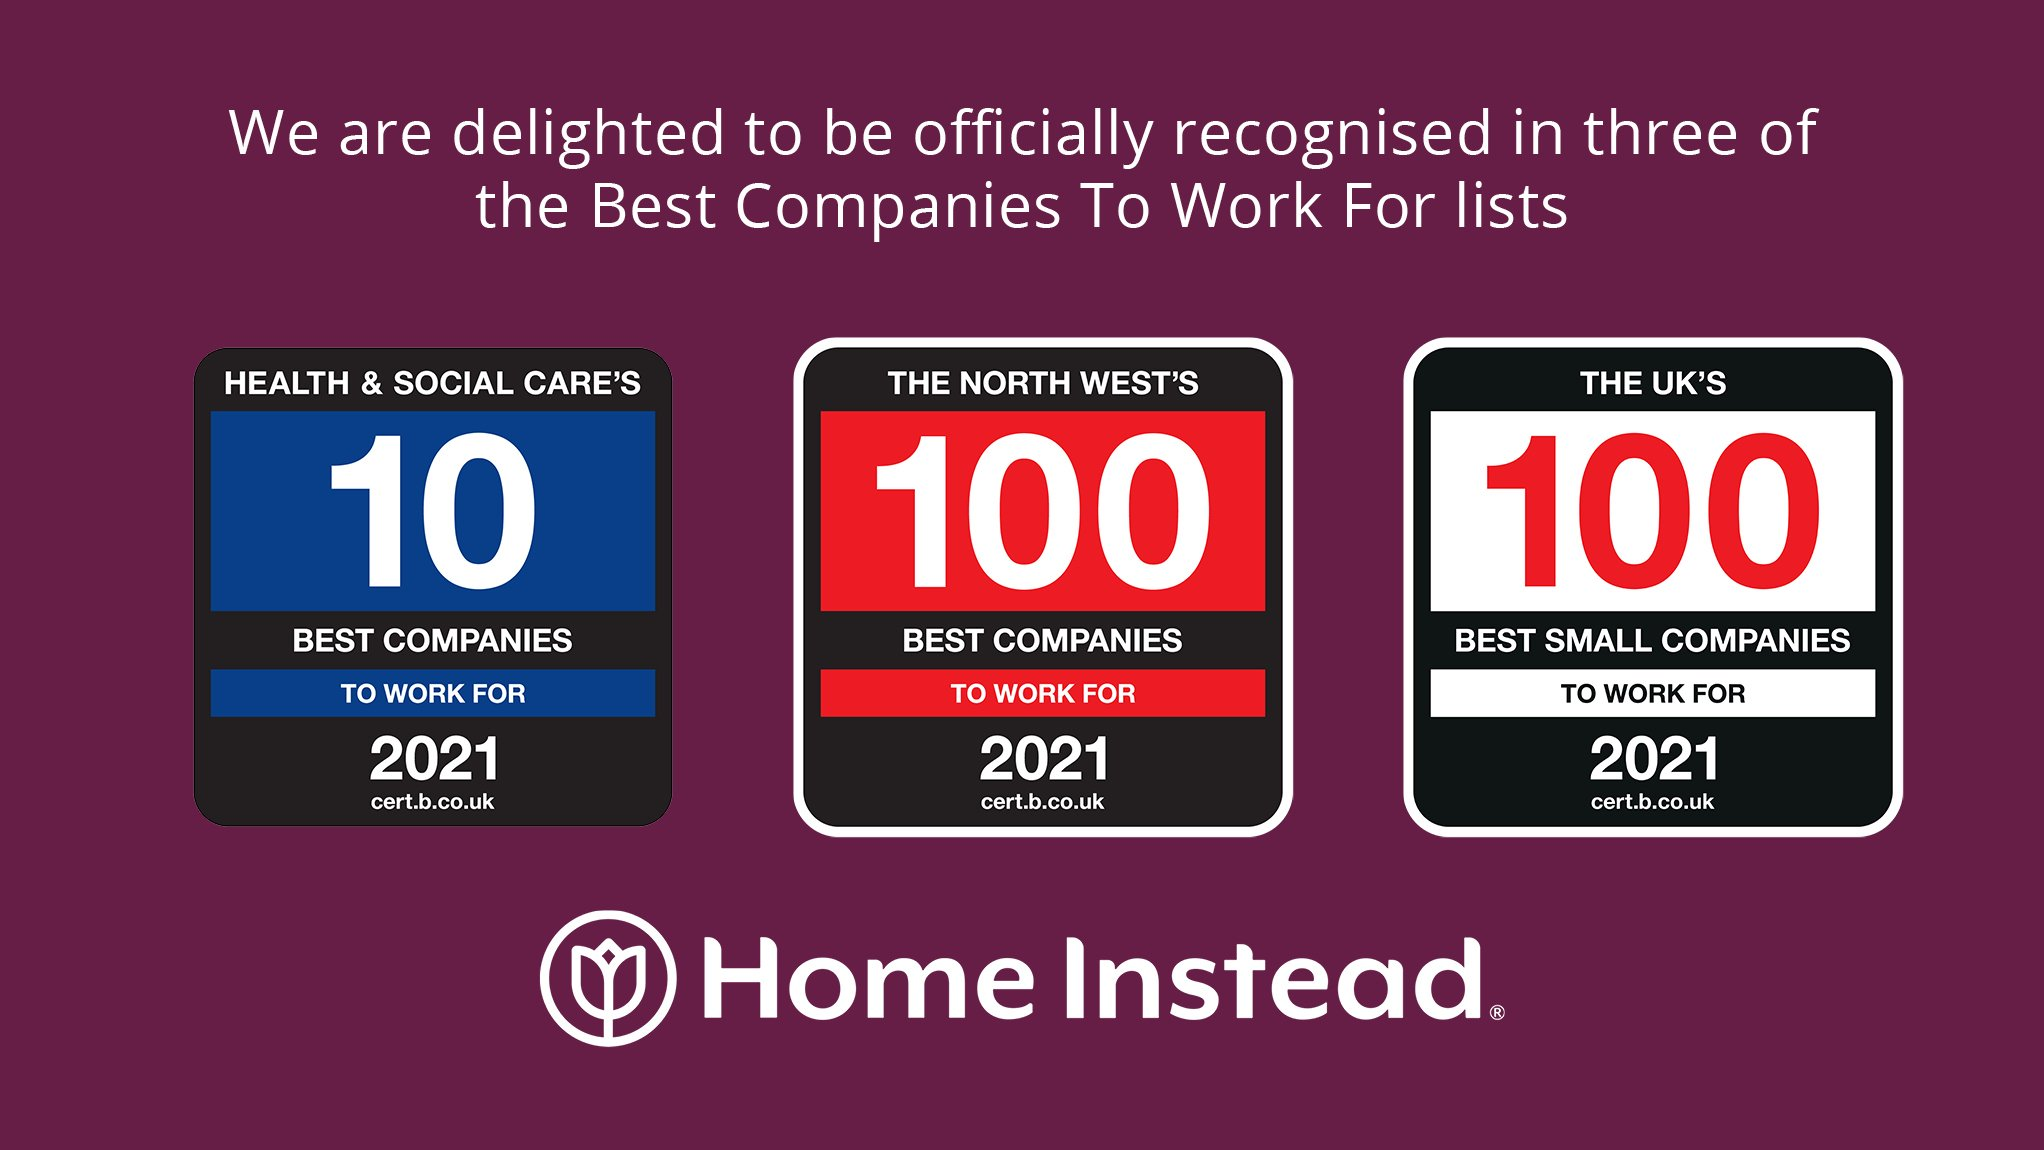 Home Instead awarded with Best company trio